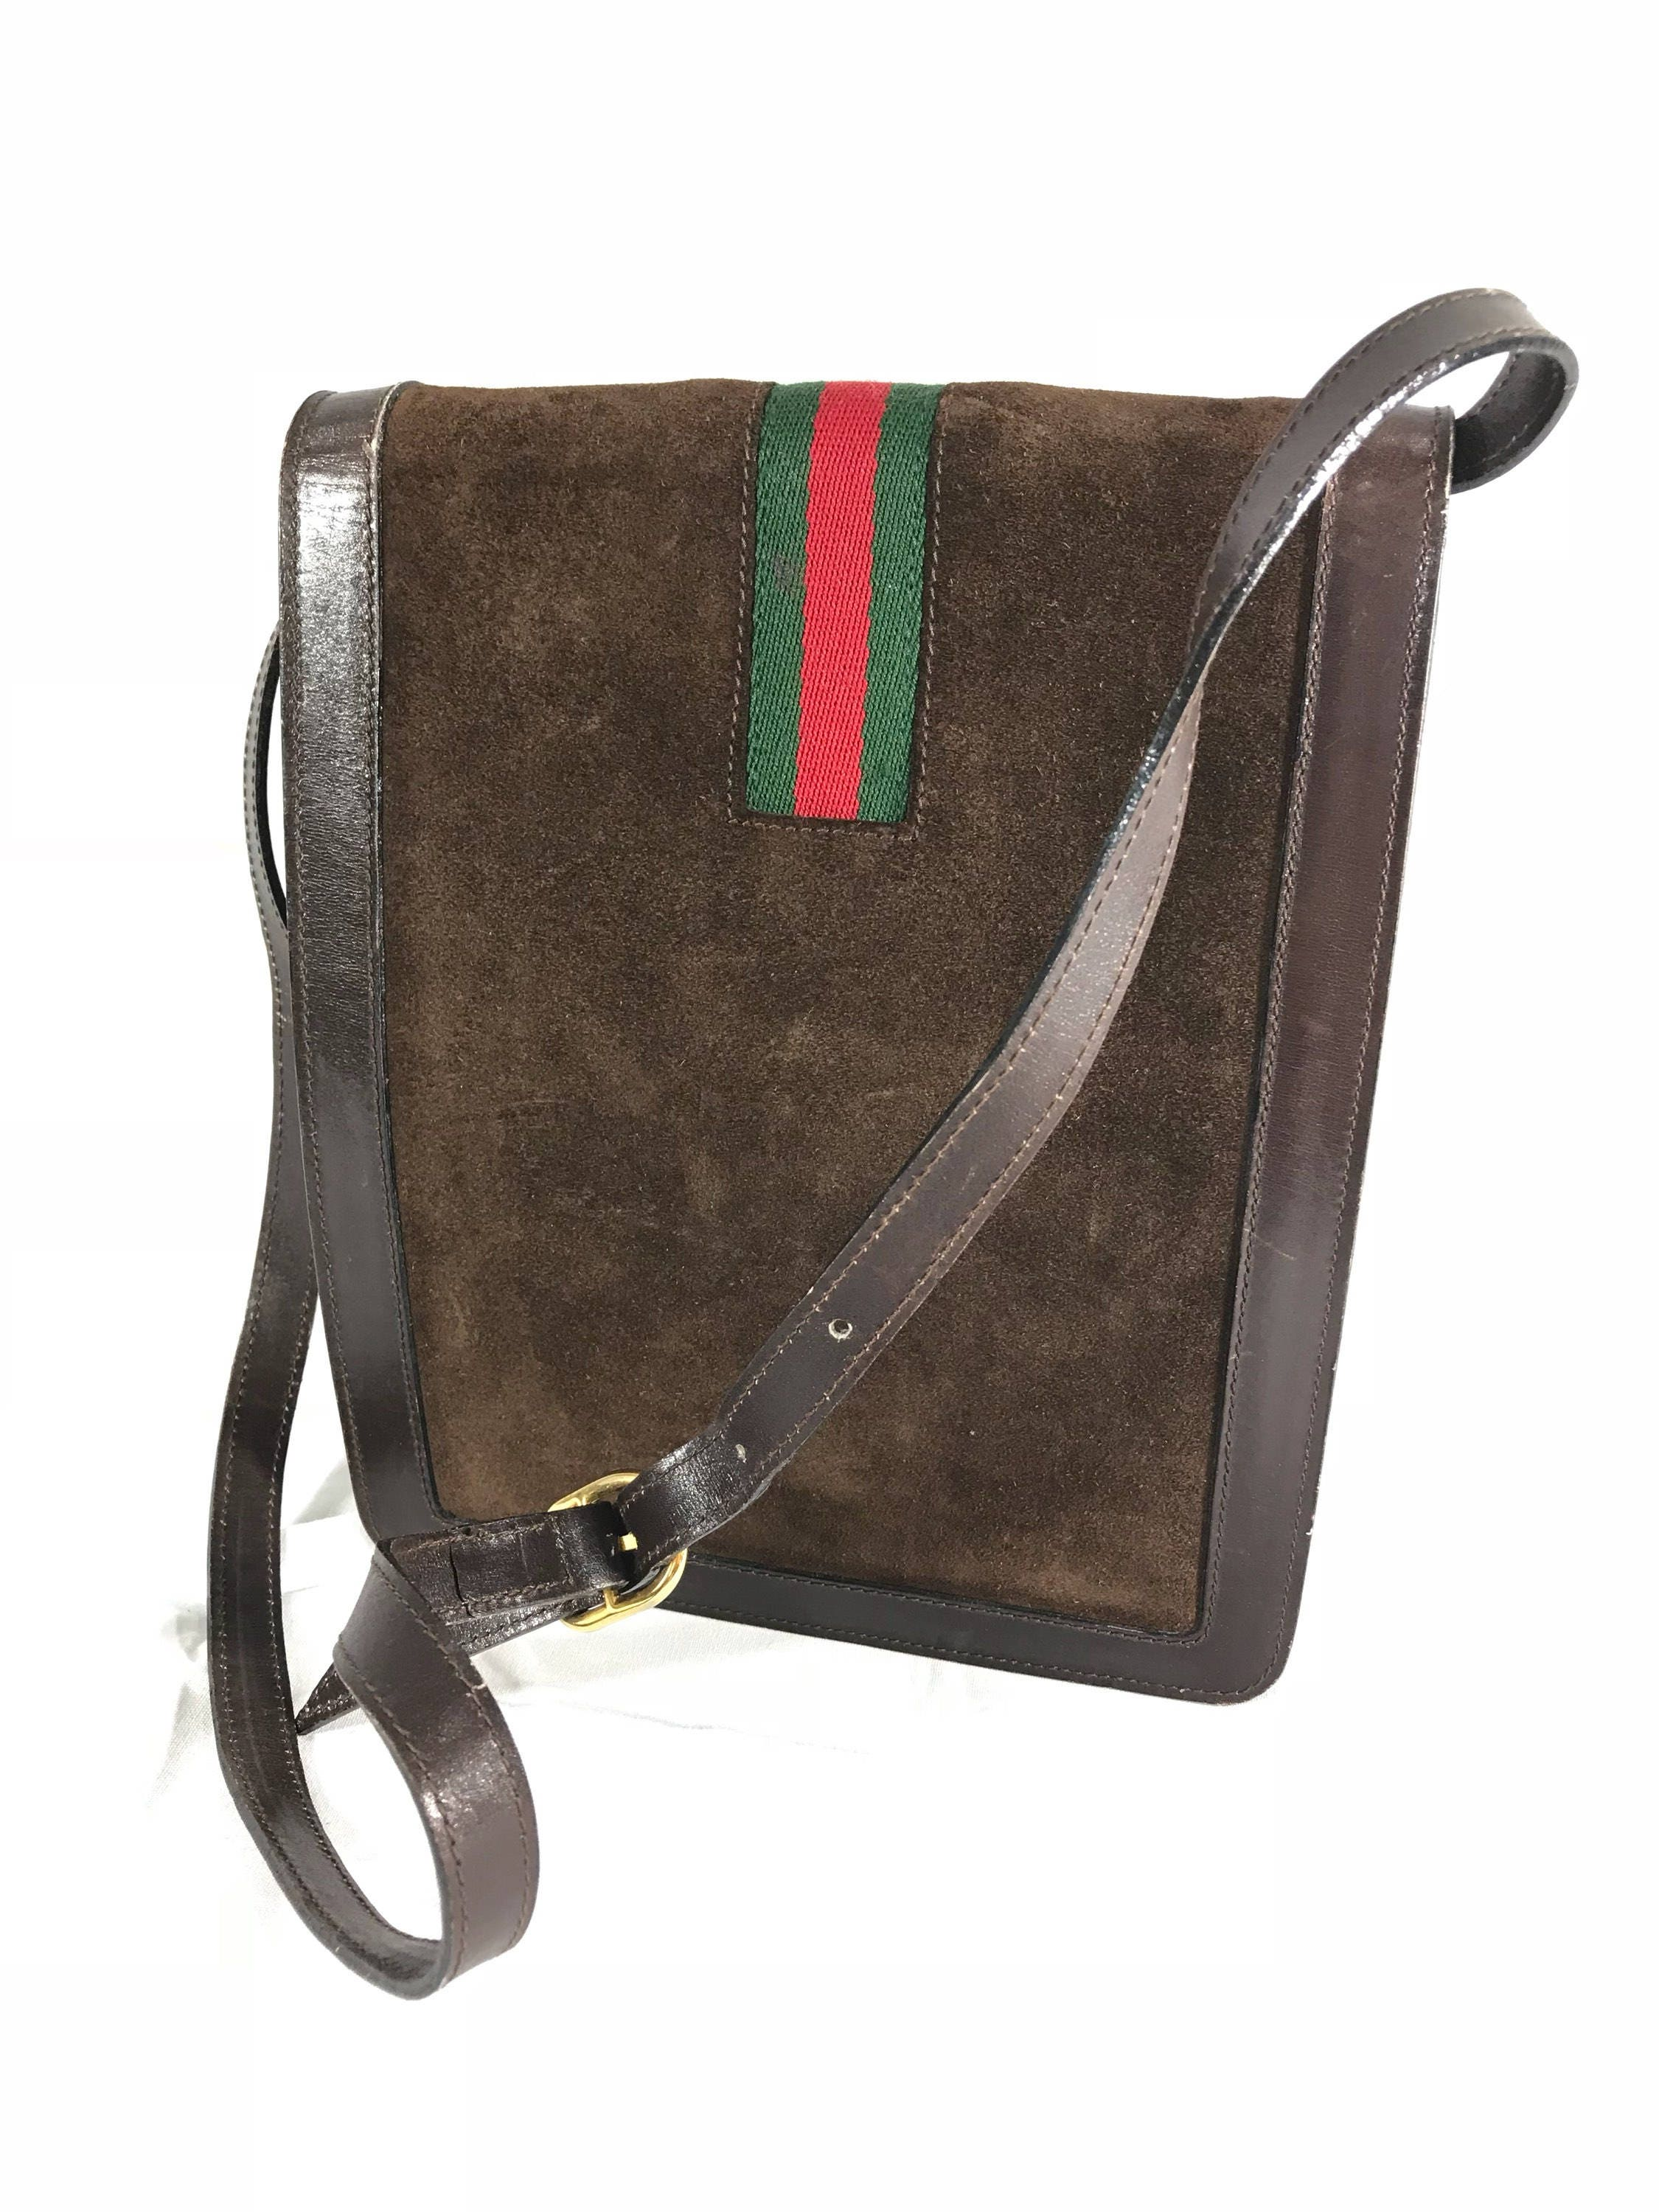 f9c308e04a04 Gucci Handbags Red Green White Made Italy. Authentic GUCCI Black Red Green  Leather Shoulder Bag ...